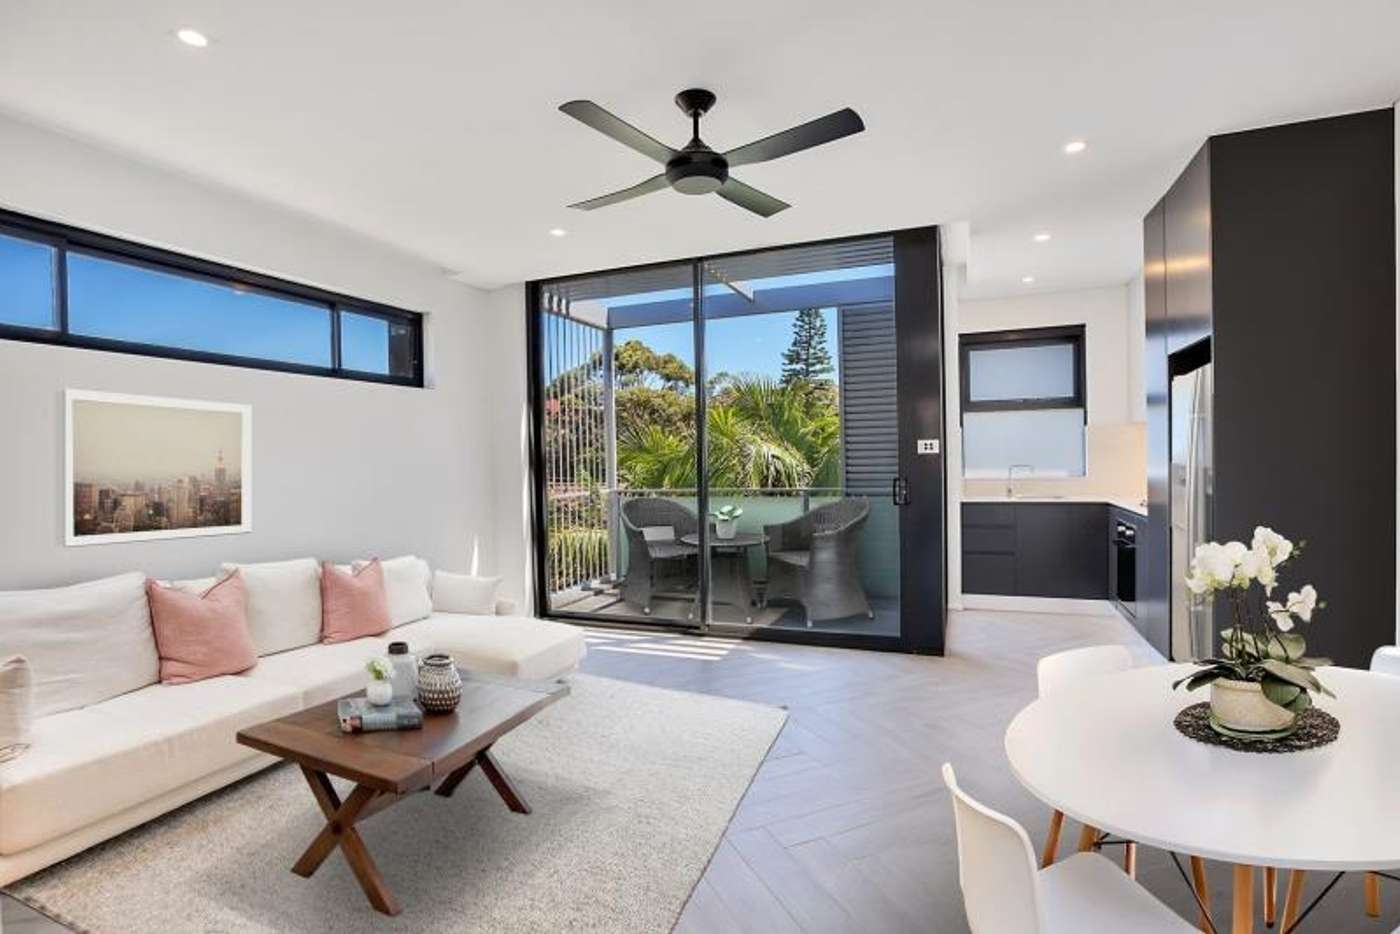 Main view of Homely apartment listing, 4/20 Waltham Street, Coogee NSW 2034